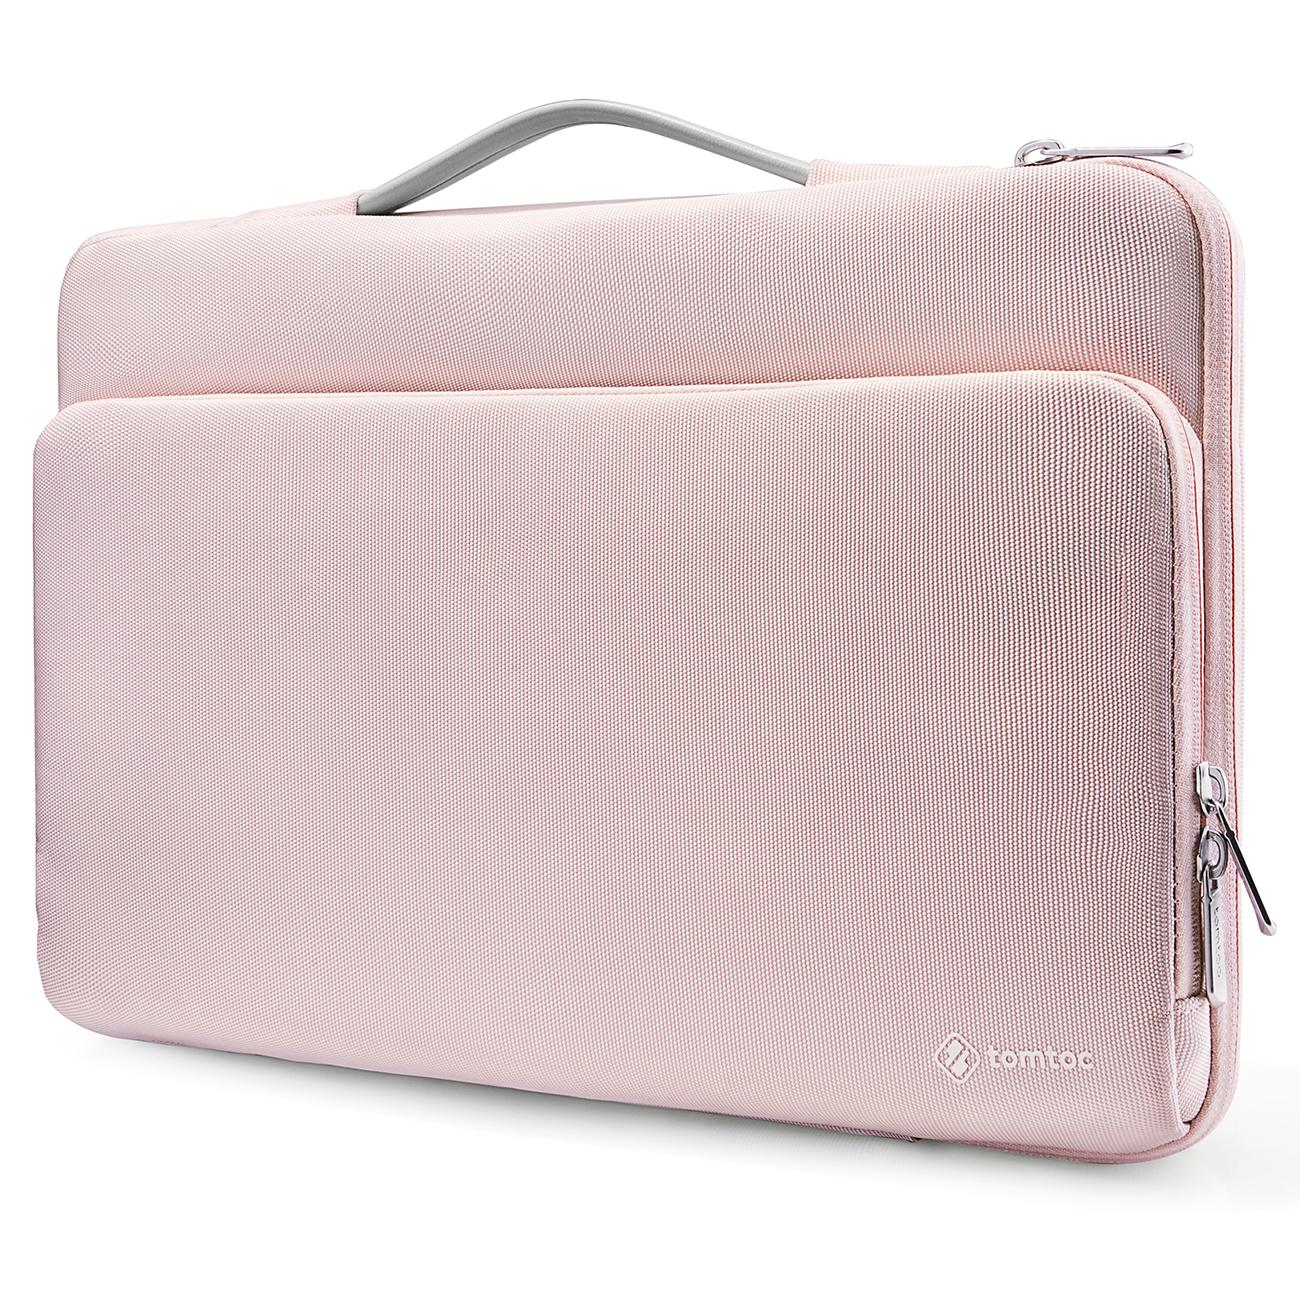 88b963e4dfe7 Laptop Cases - Buy Laptop Cases at Best Price in Singapore | redmart ...